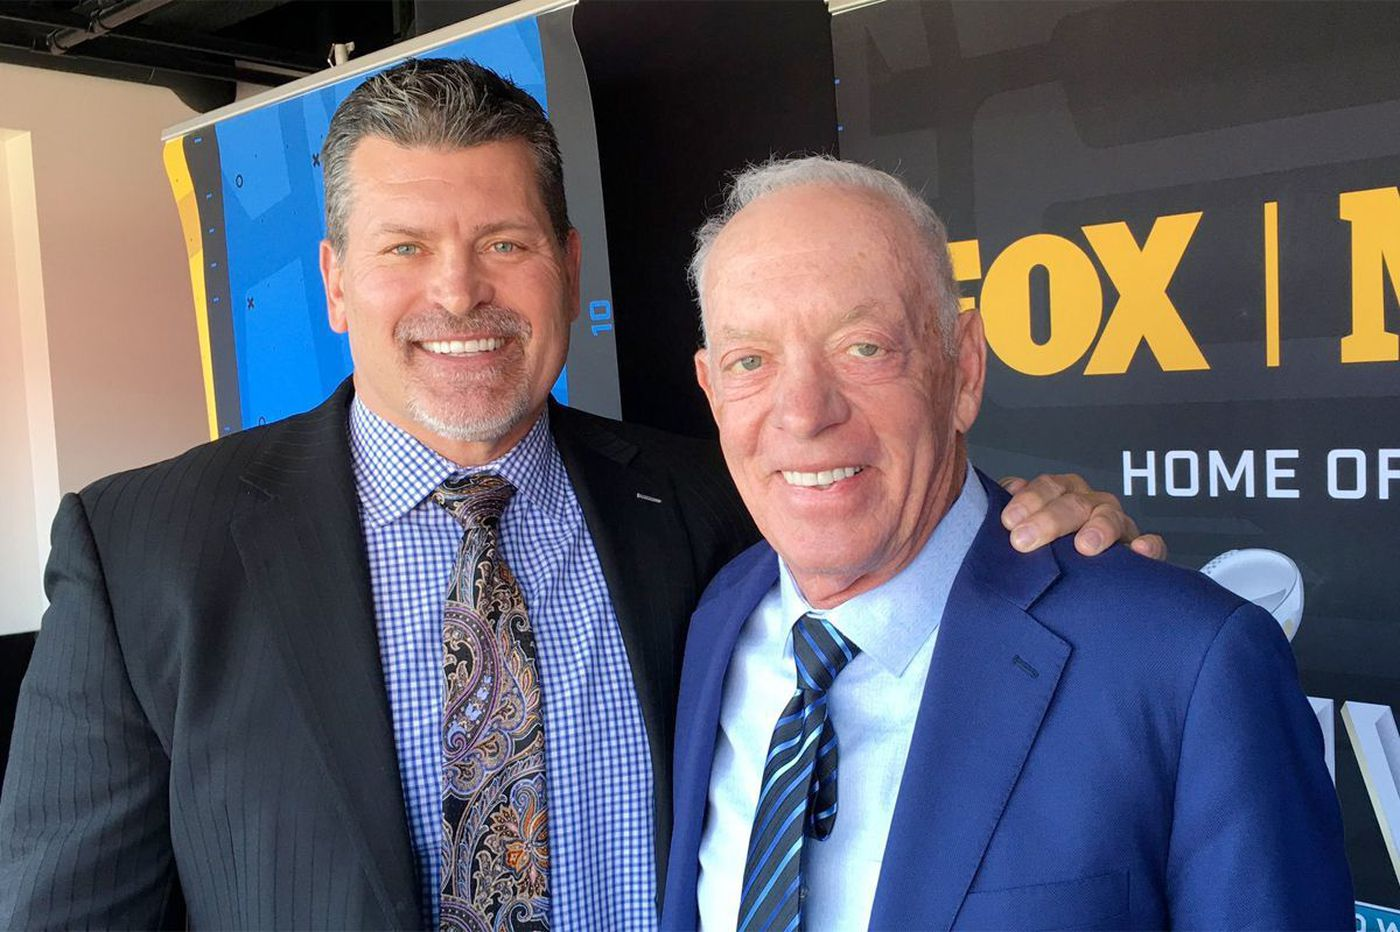 Fox Sports' Dick Stockton responds to criticism over Eagles-Bears call